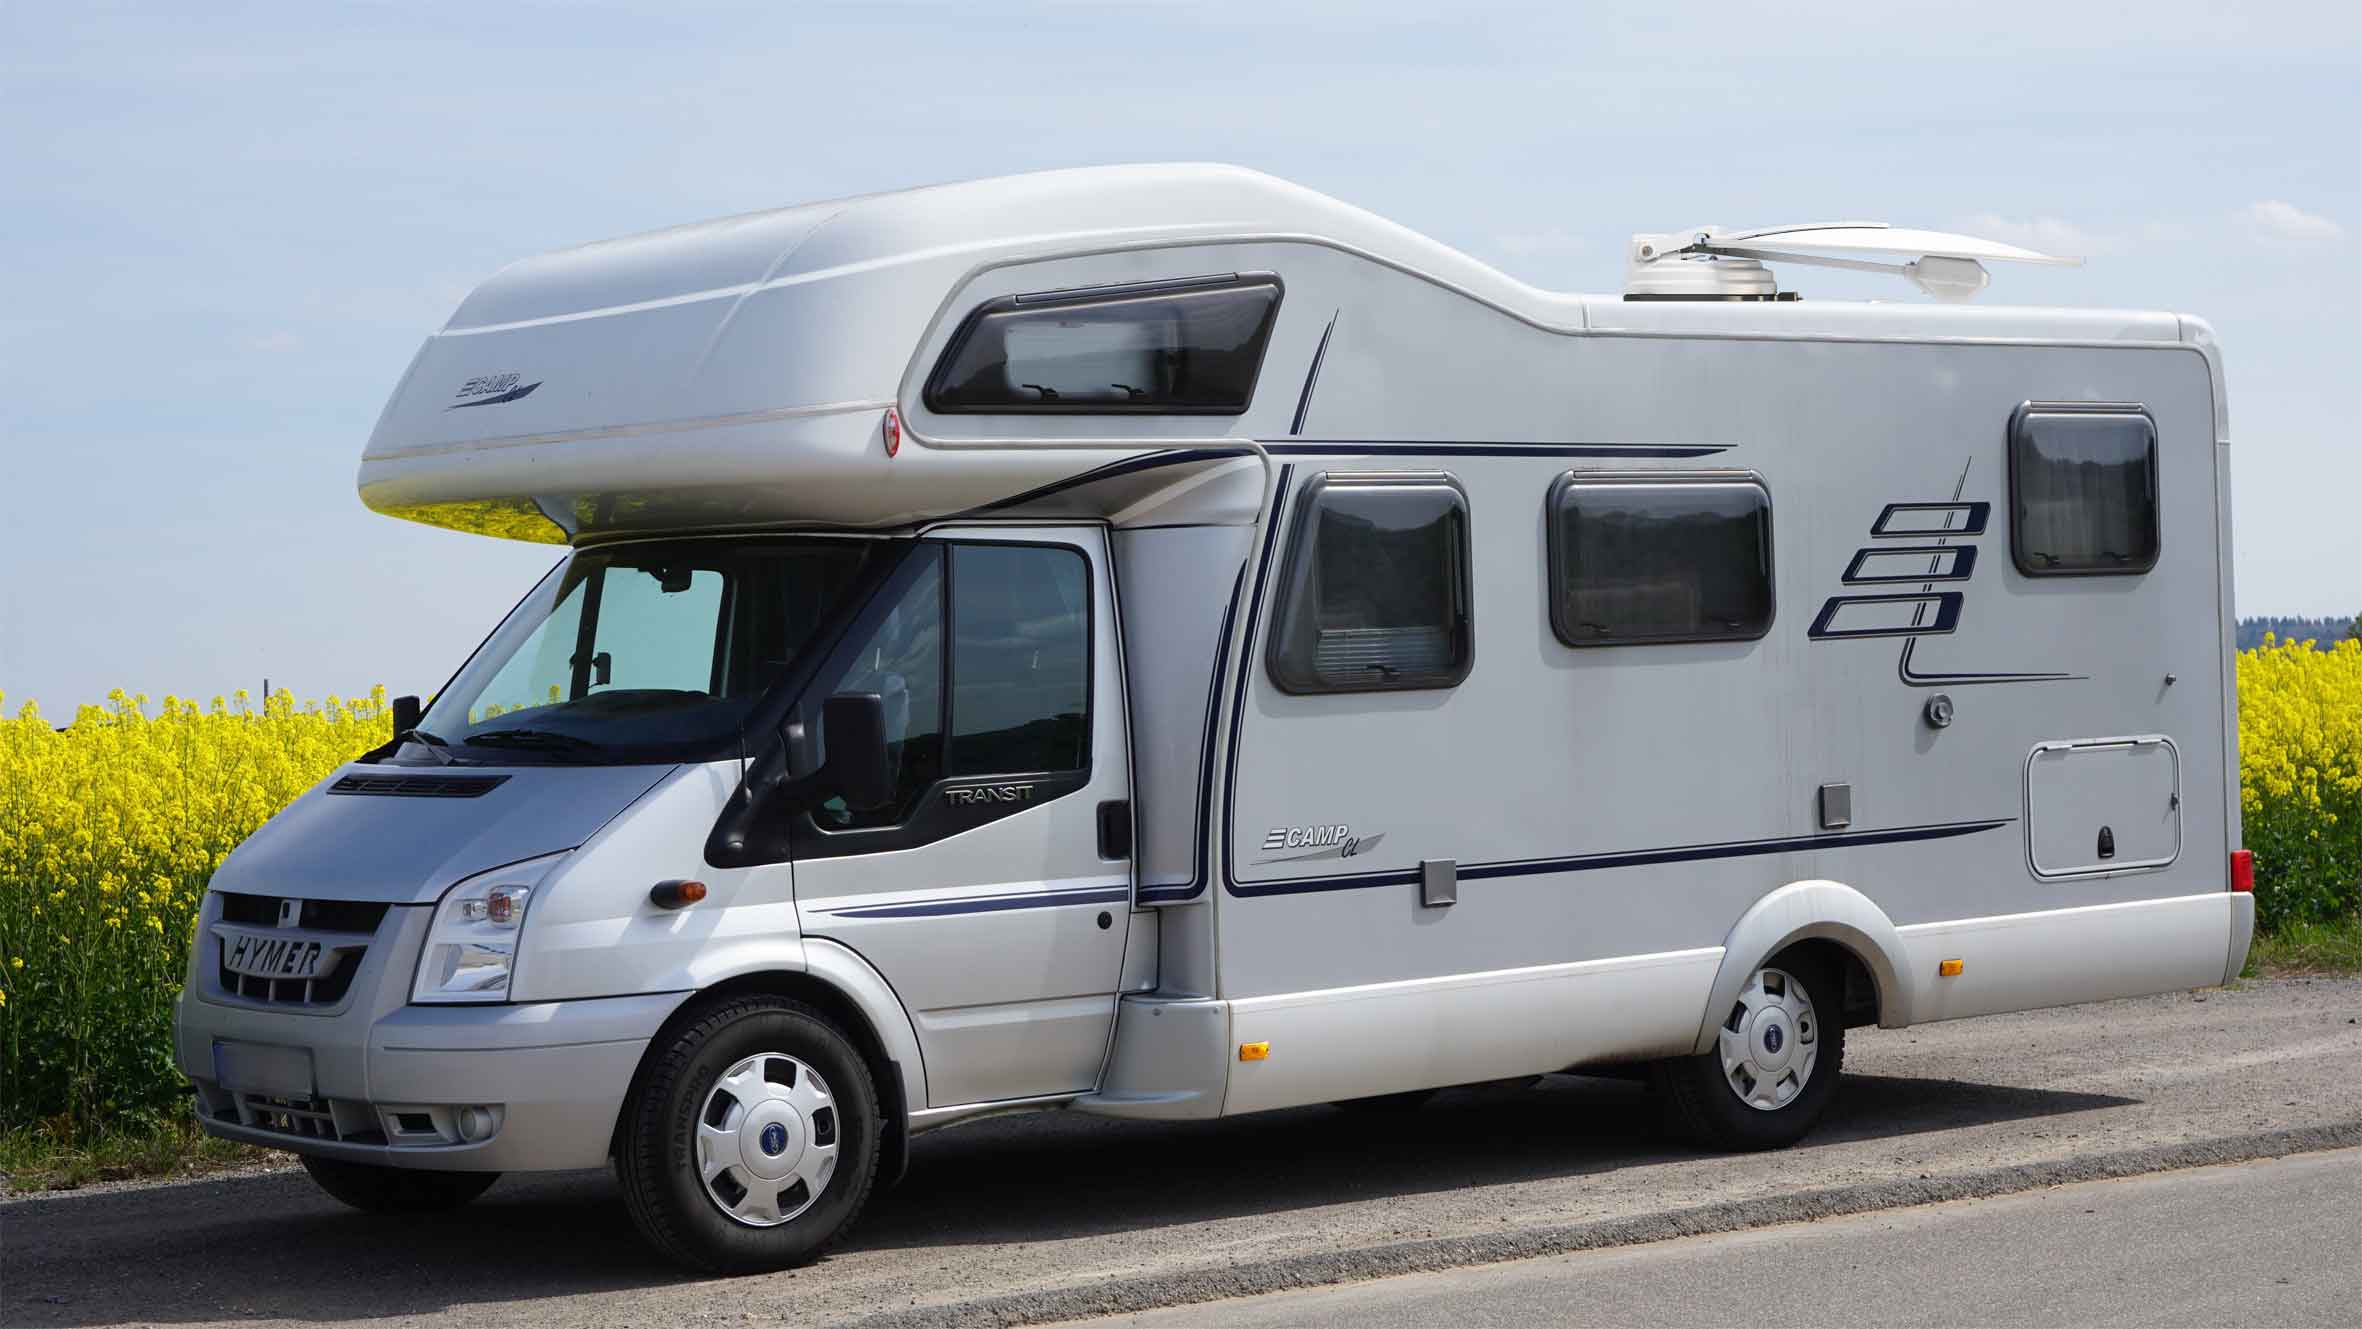 Satellite TV for Caravans